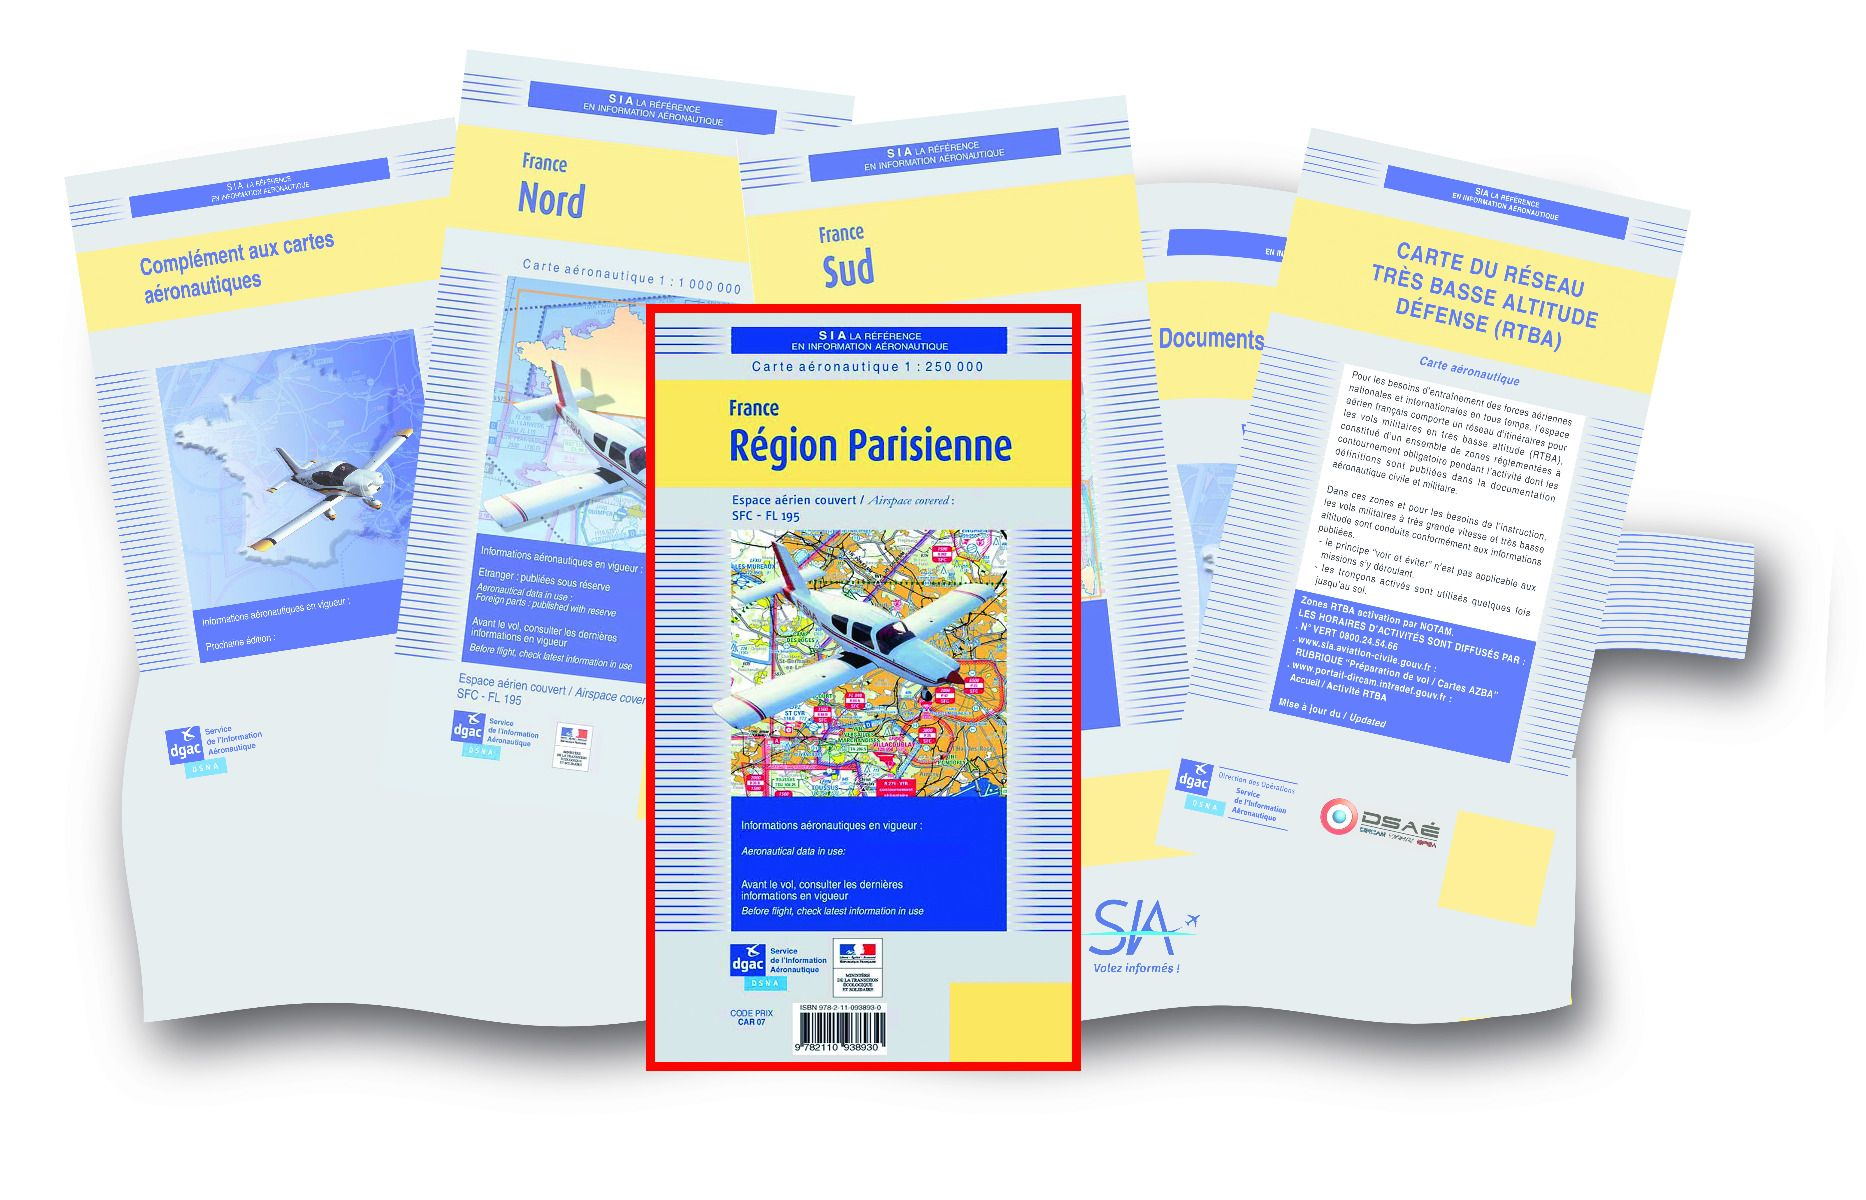 POCHETTE VFR + Région Parisienne 2020 DOCUMENTATIONS DU SIA SIA